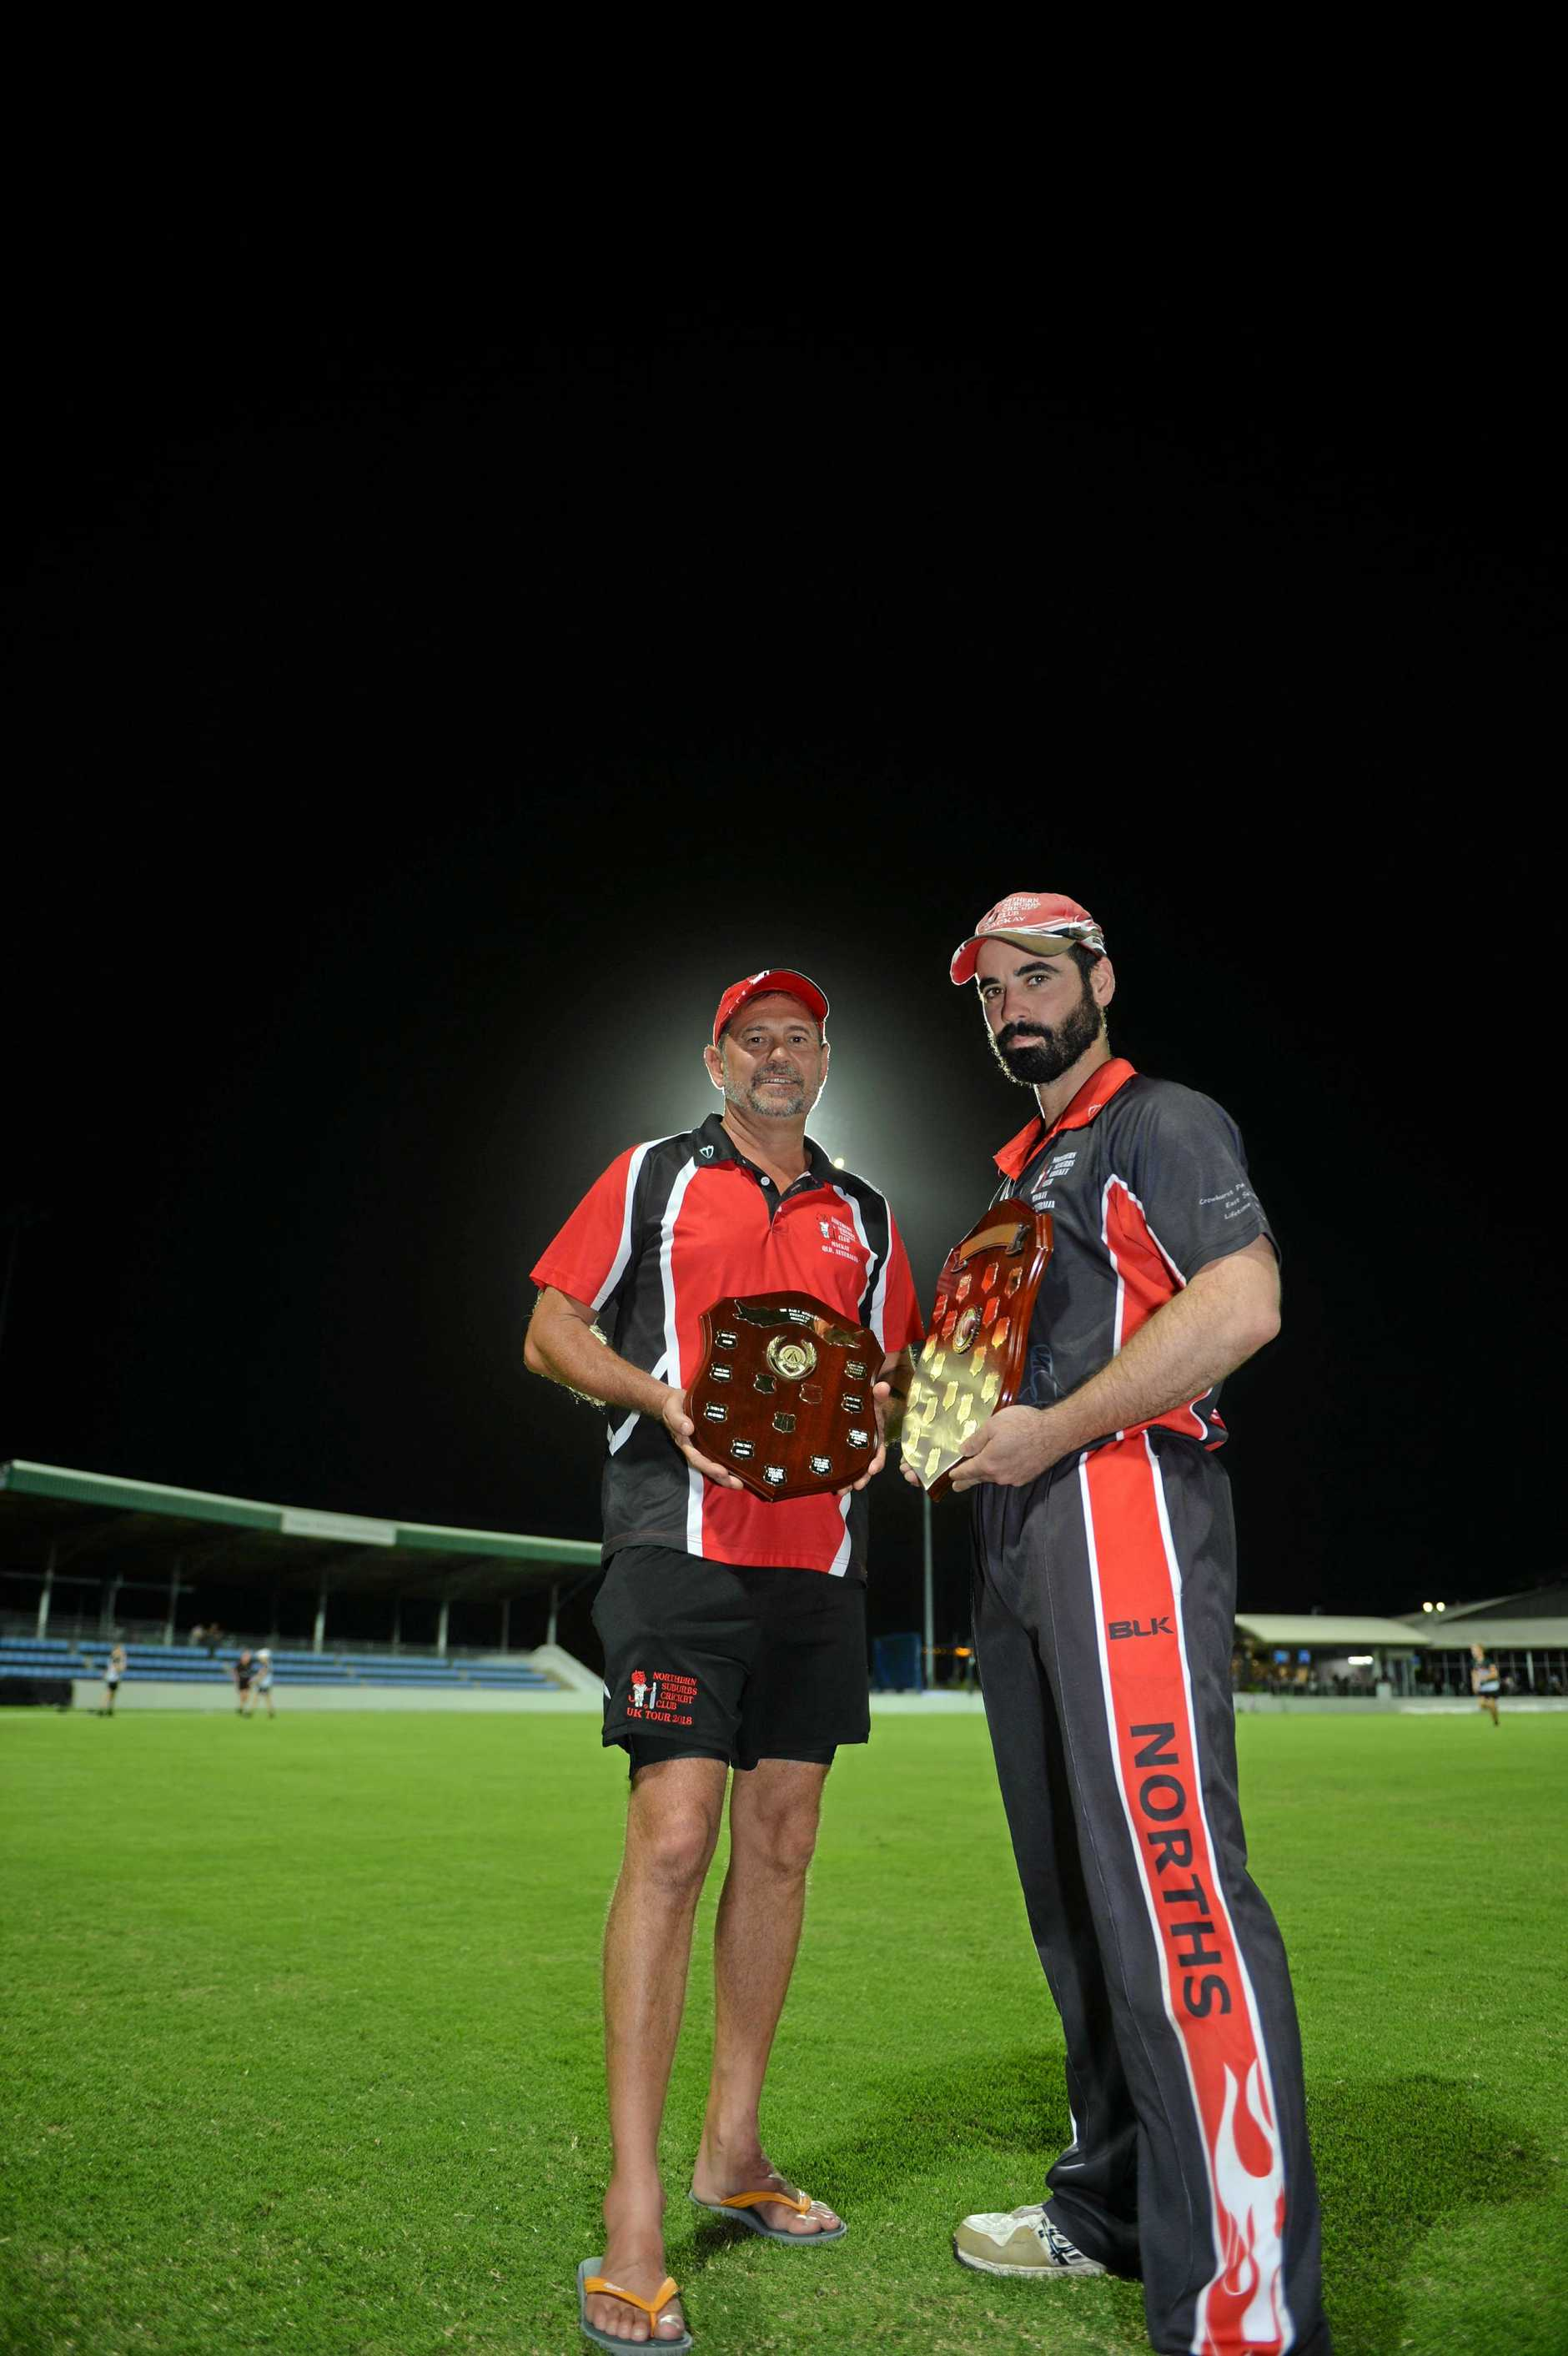 Northern Suburbs' 1st and 2nd grade captains, Peter Shepherd (right) and Troy Newton holding their championship trophies after winning 1st grade and 2nd grade competitions in the T20 Shootout. 02/02/19.